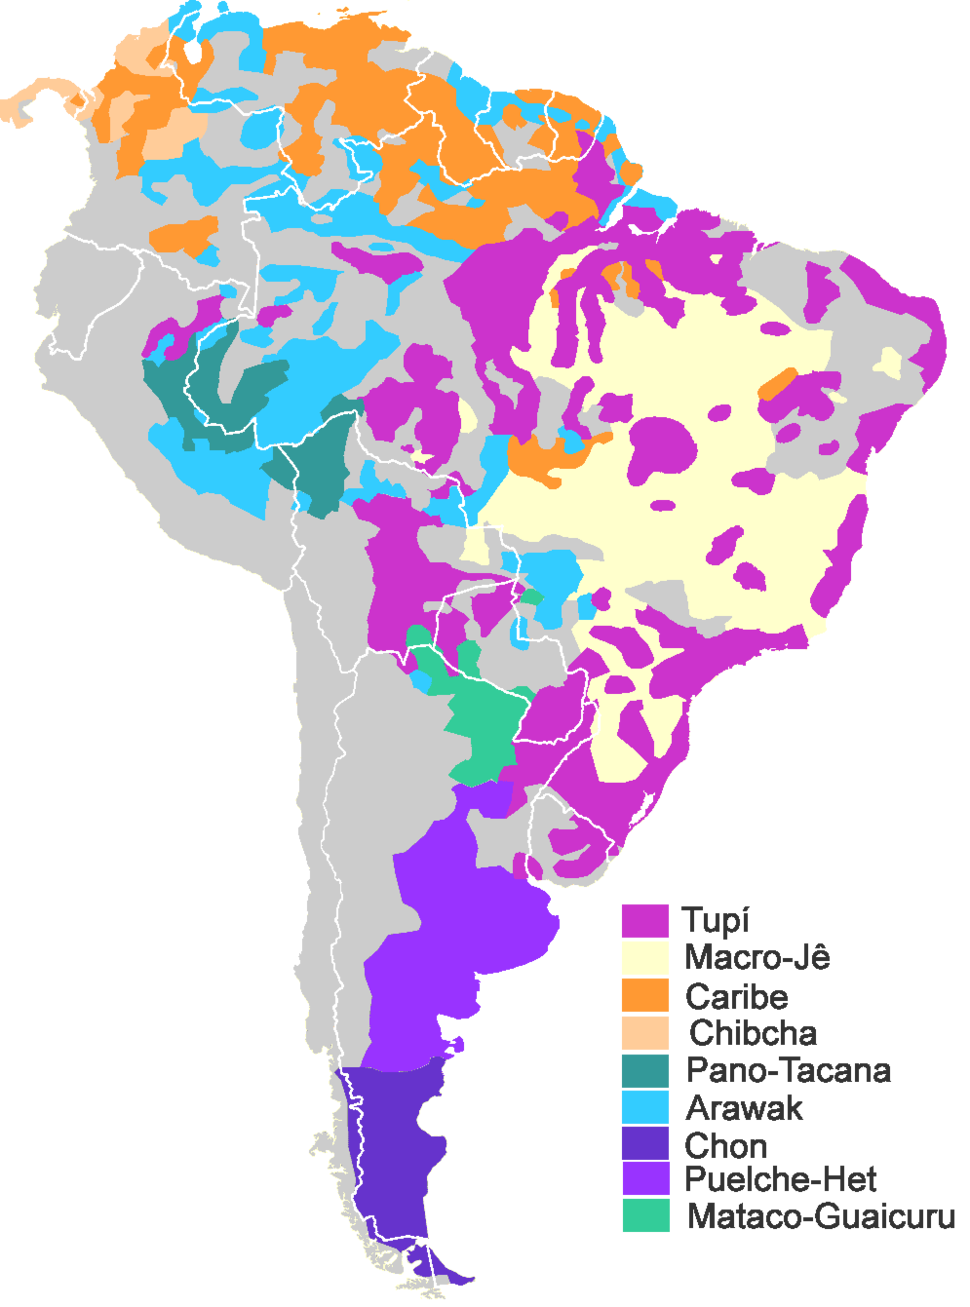 SouthAmerican families